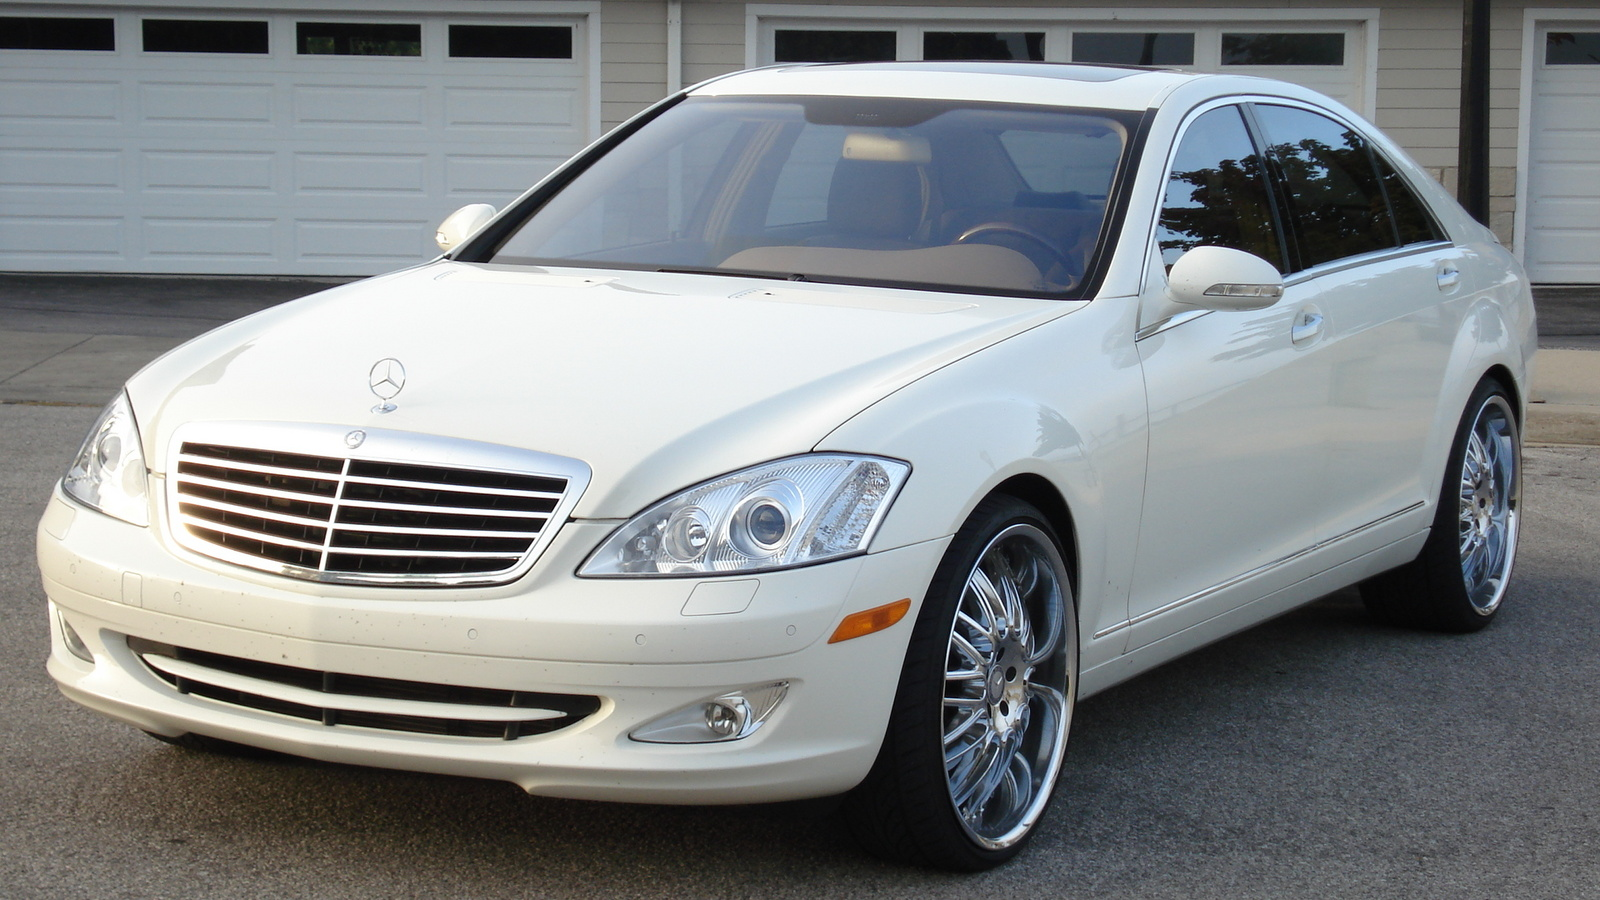 2009 mercedes benz s class exterior pictures cargurus for 2009 mercedes benz s550 price